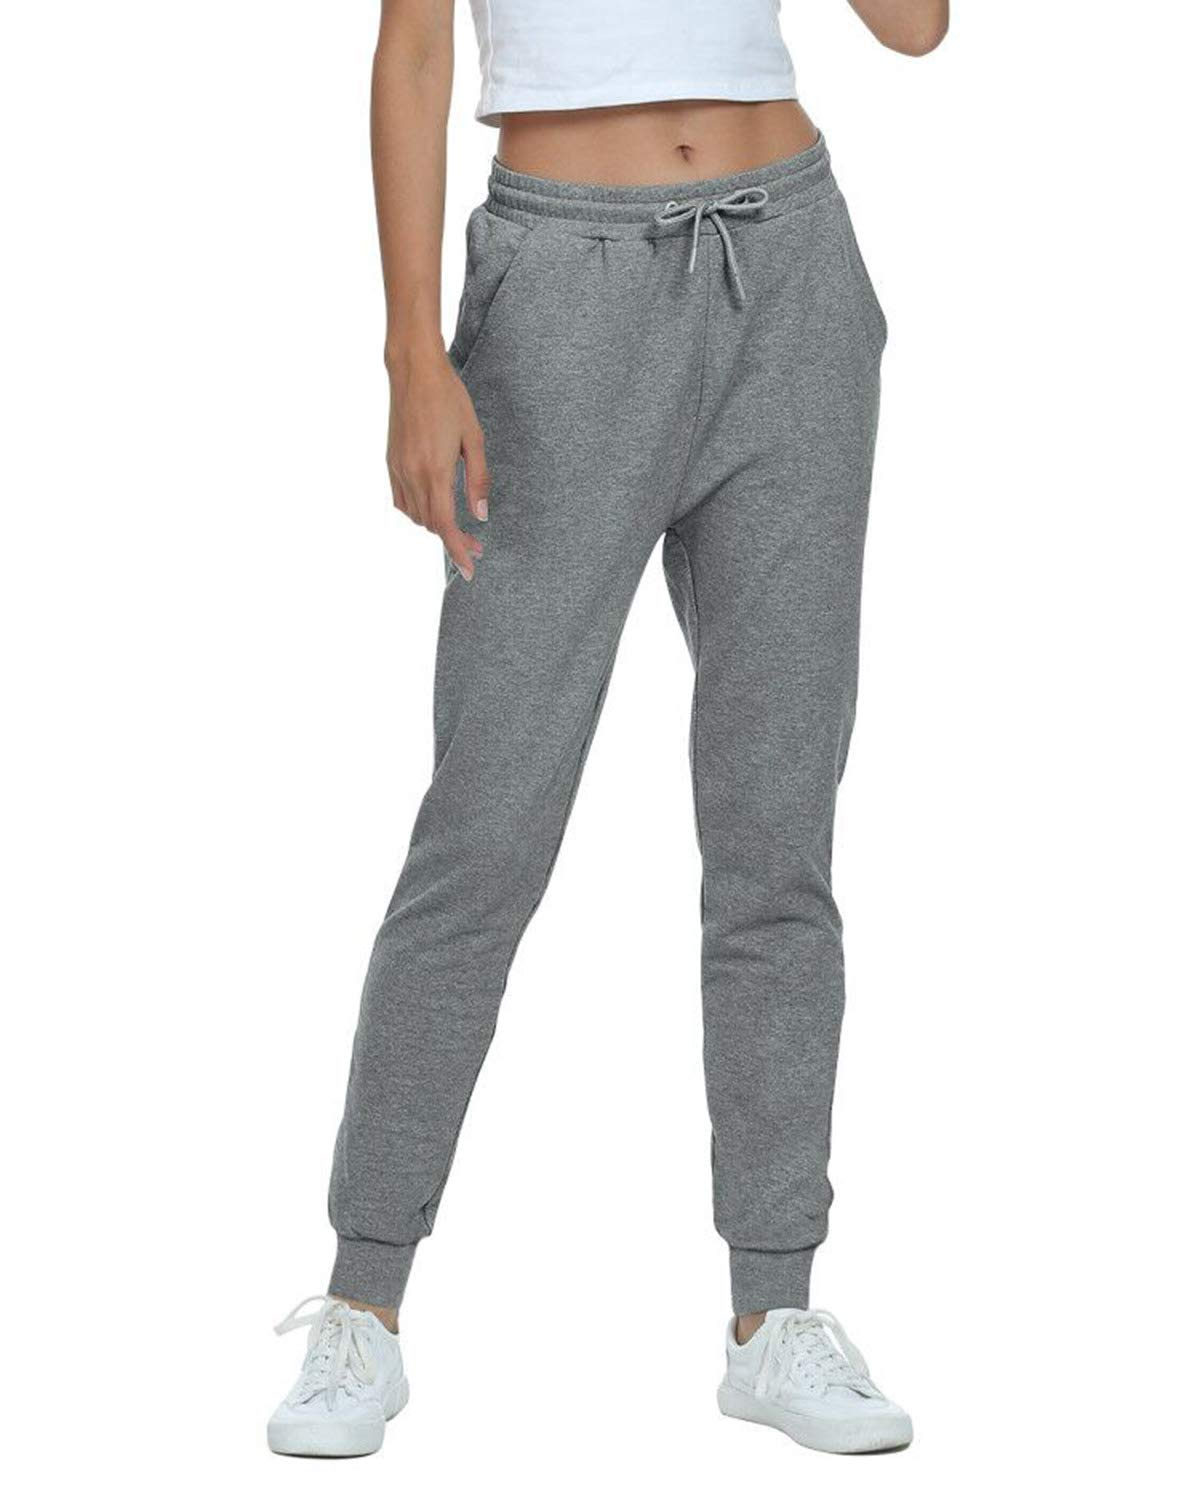 TODOLOR Women's Workout Sweatpants Cotton Joggers Pants Track Cuff Drawstring Lounge Sweat Pants with Pockets